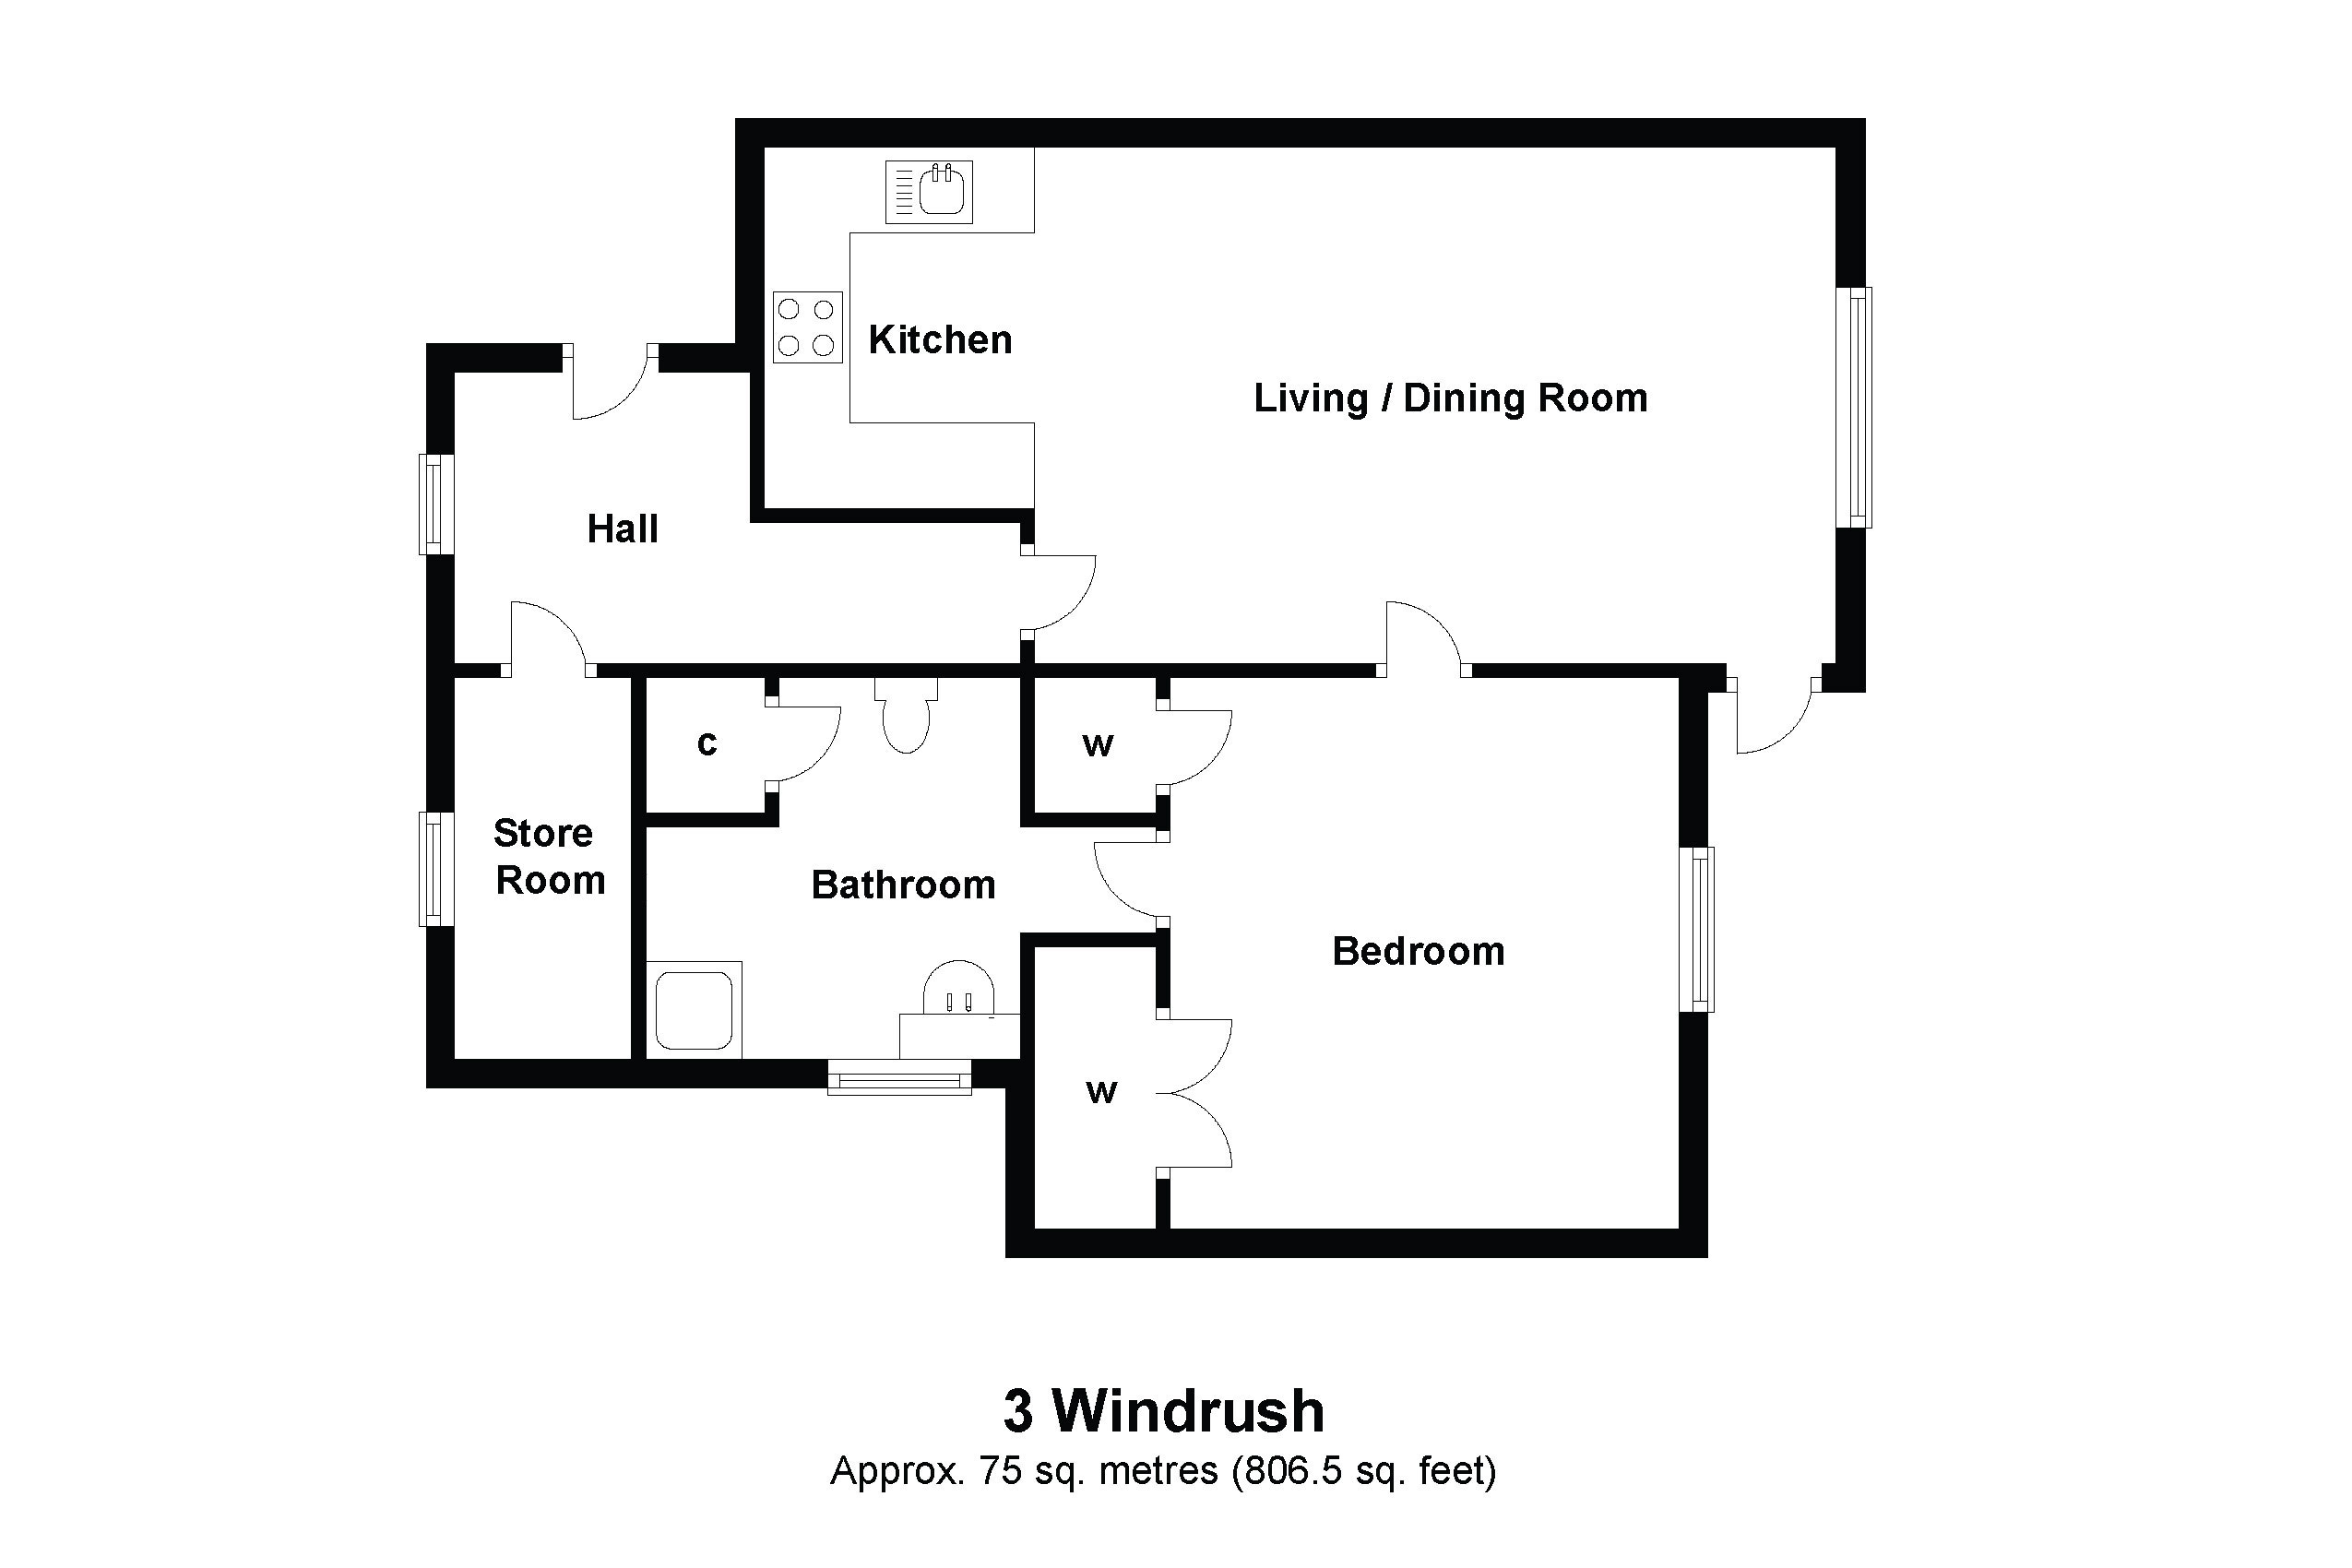 3 Windrush Floorplan